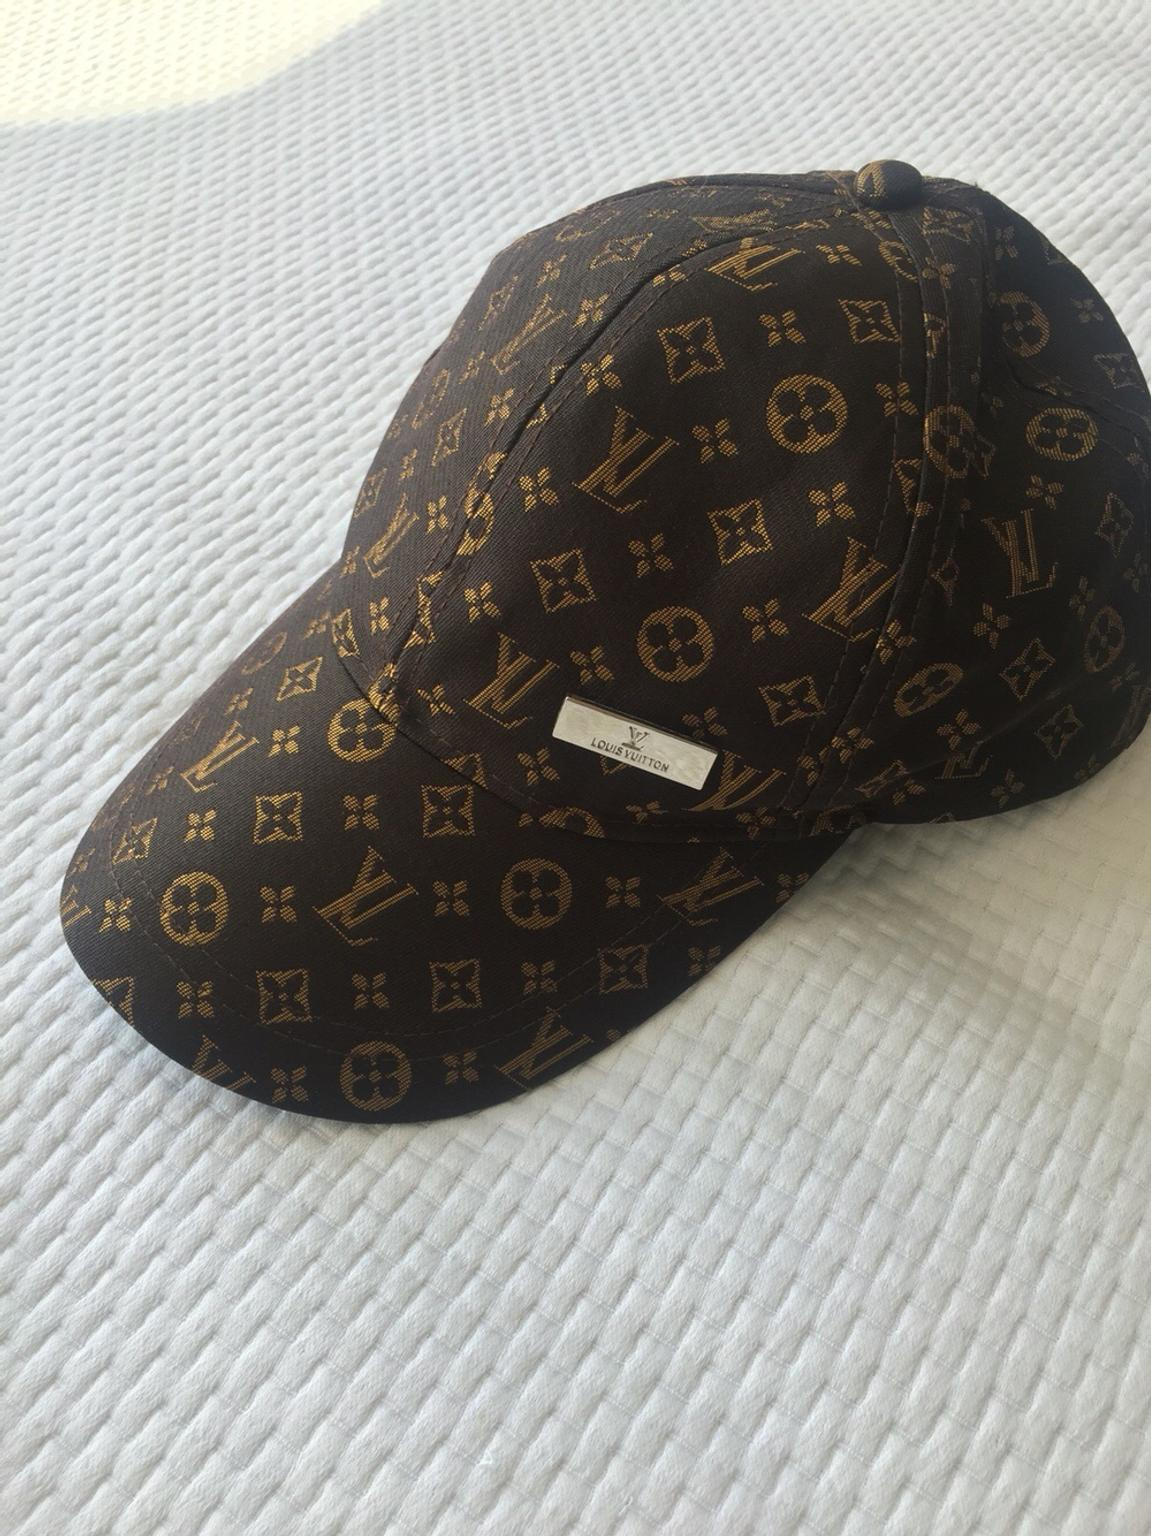 9a1c66c7 Louis Vuitton baseball cap in SW11 London for £50.00 for sale - Shpock